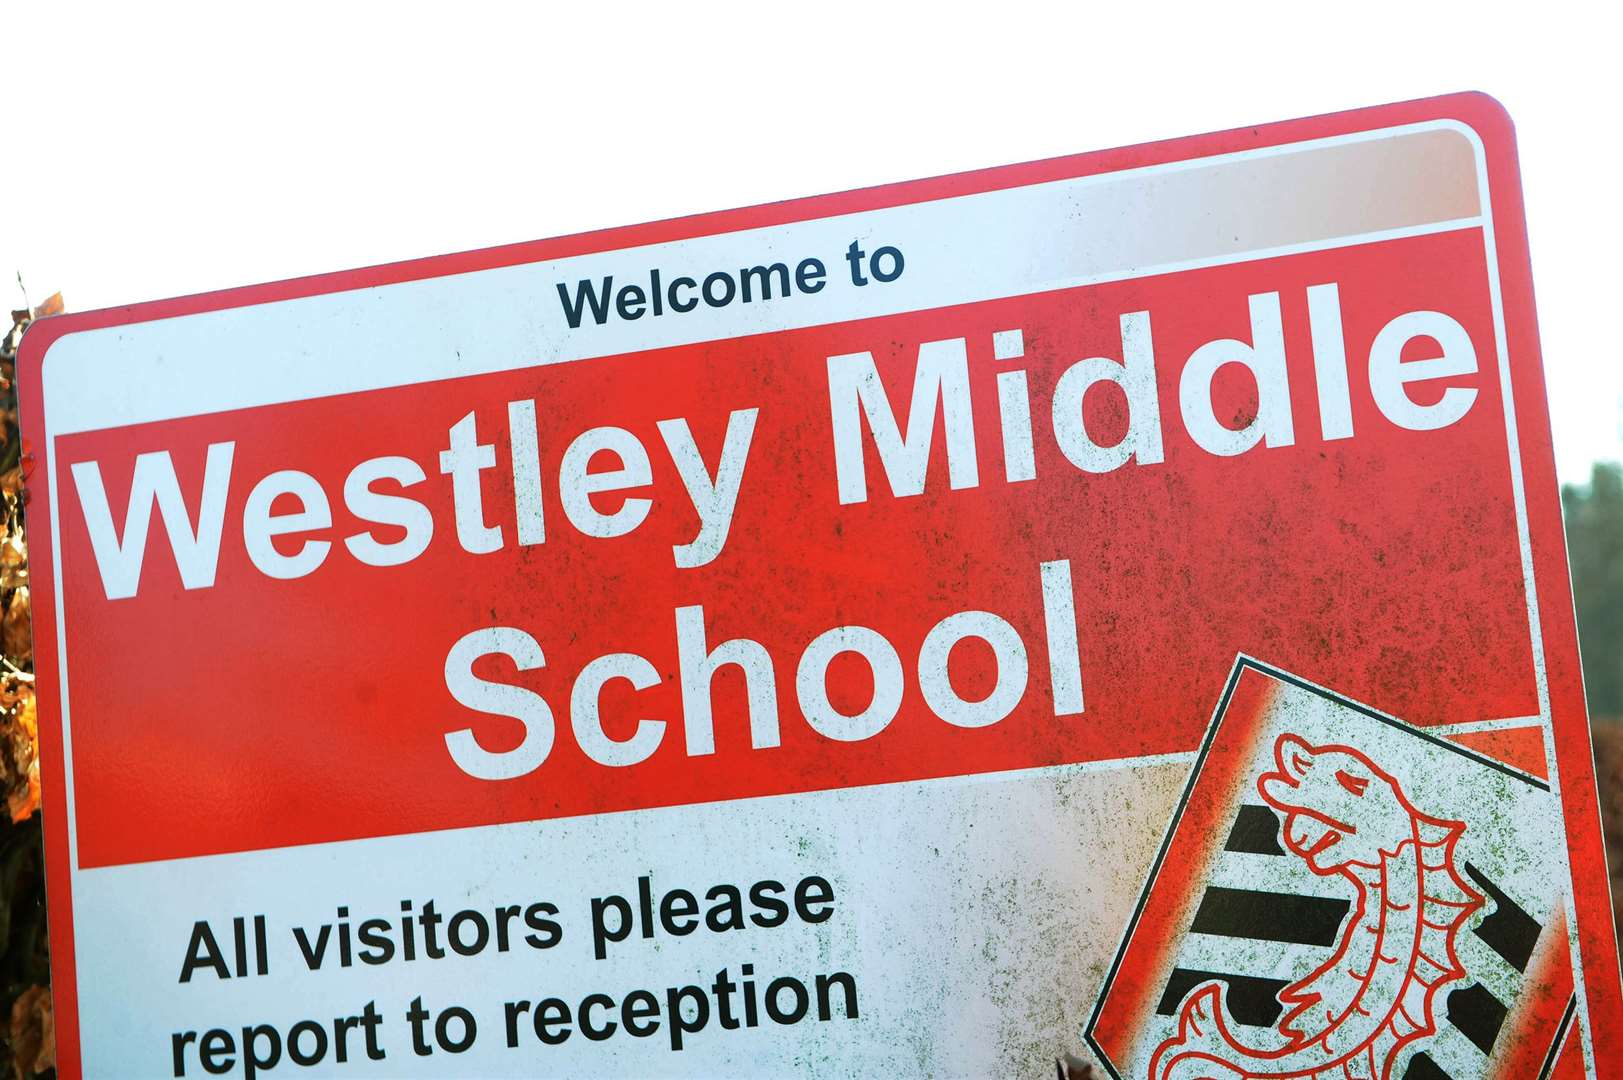 Westley Middle School in Bury St Edmunds. Picture by Mecha Morton